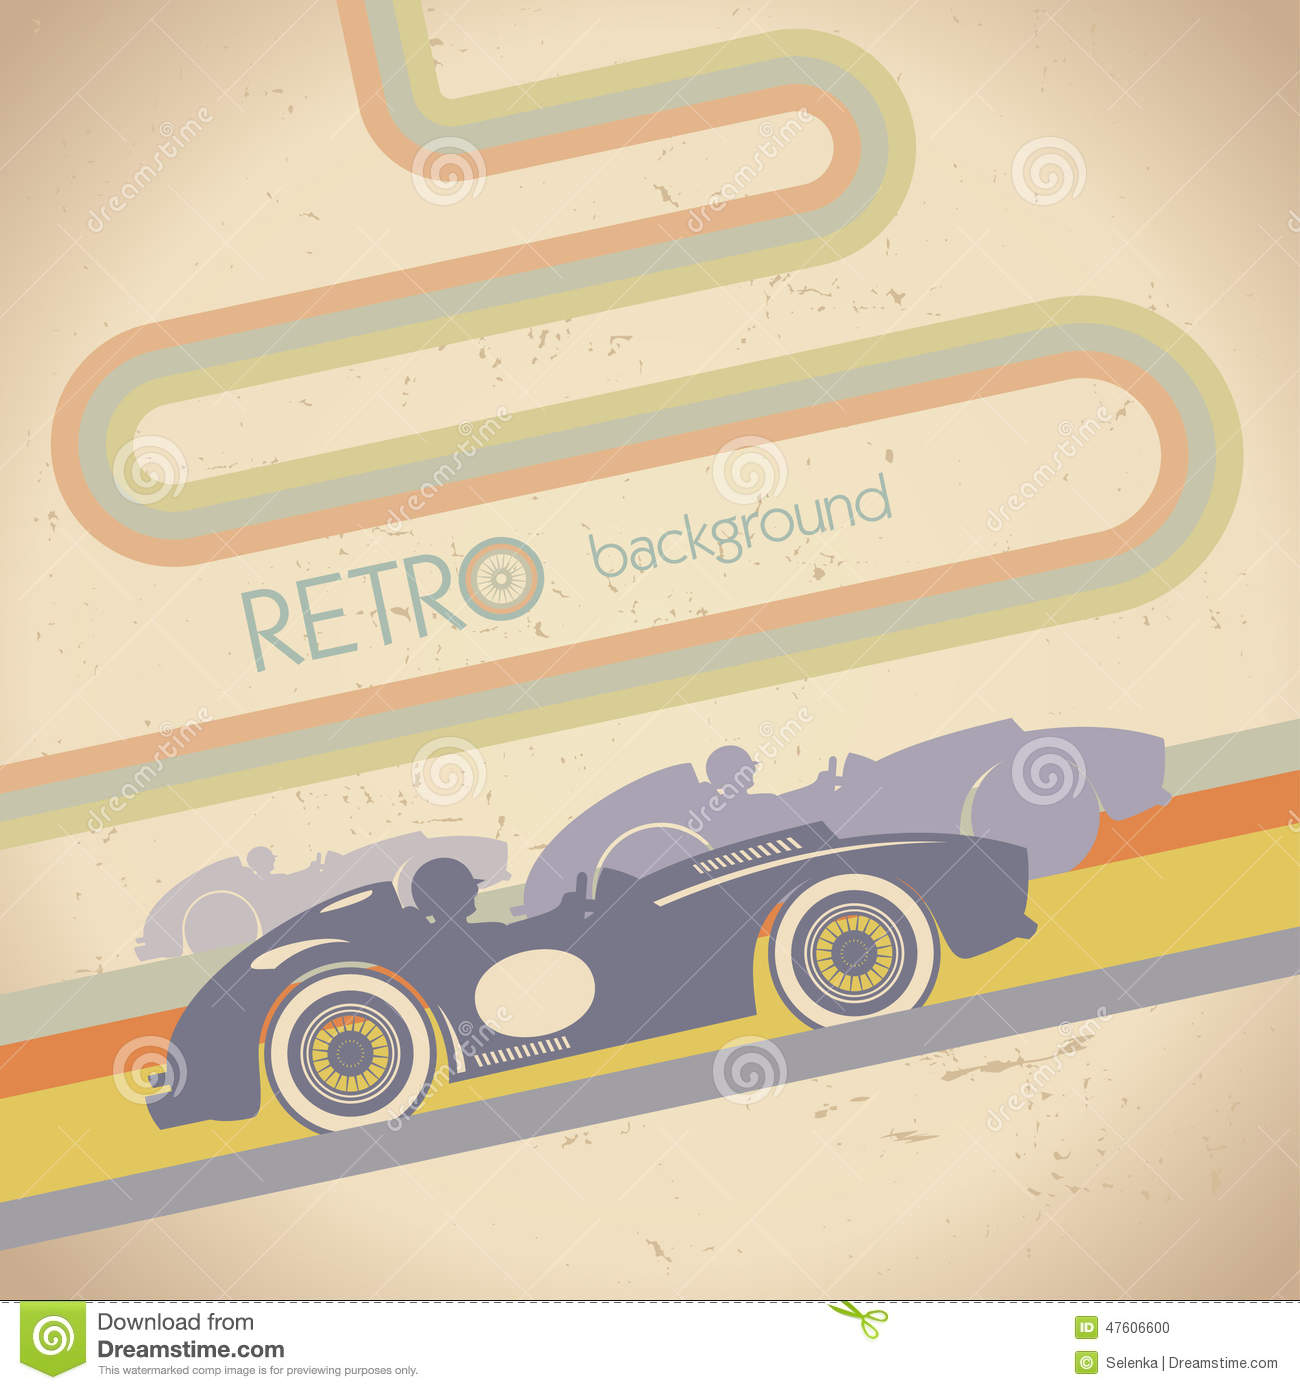 Racing Design With Retro Car Vector Image 47606600 – Free for Sale Signs for Cars